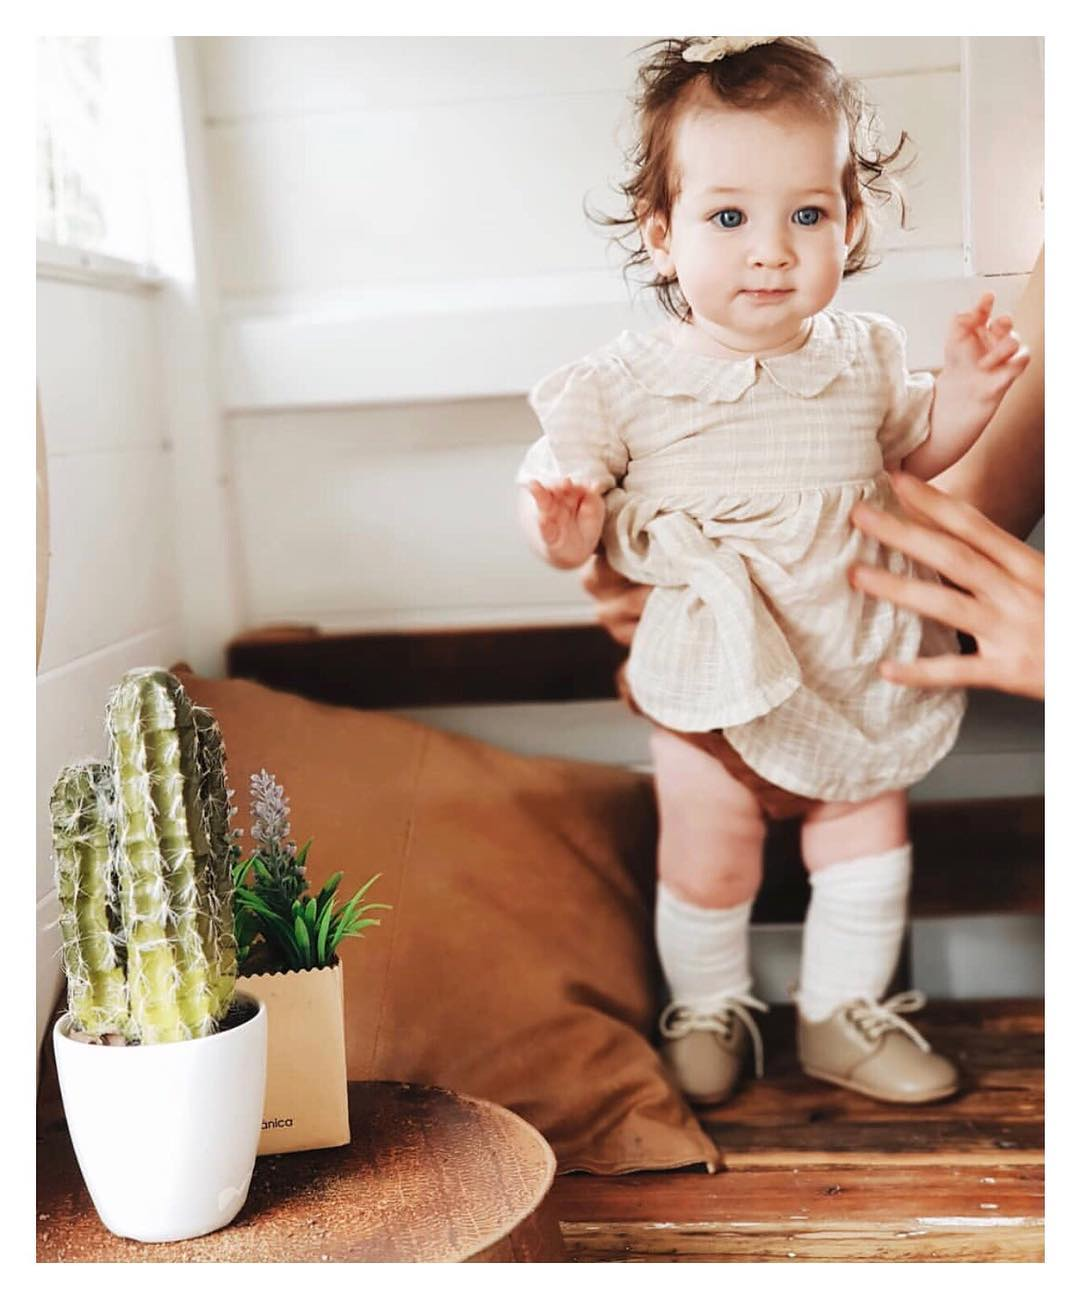 Quality_baby_shoes_for_children,_toddlers_and_babies._Soft_soles,_natural_leather _6738_width=480x480